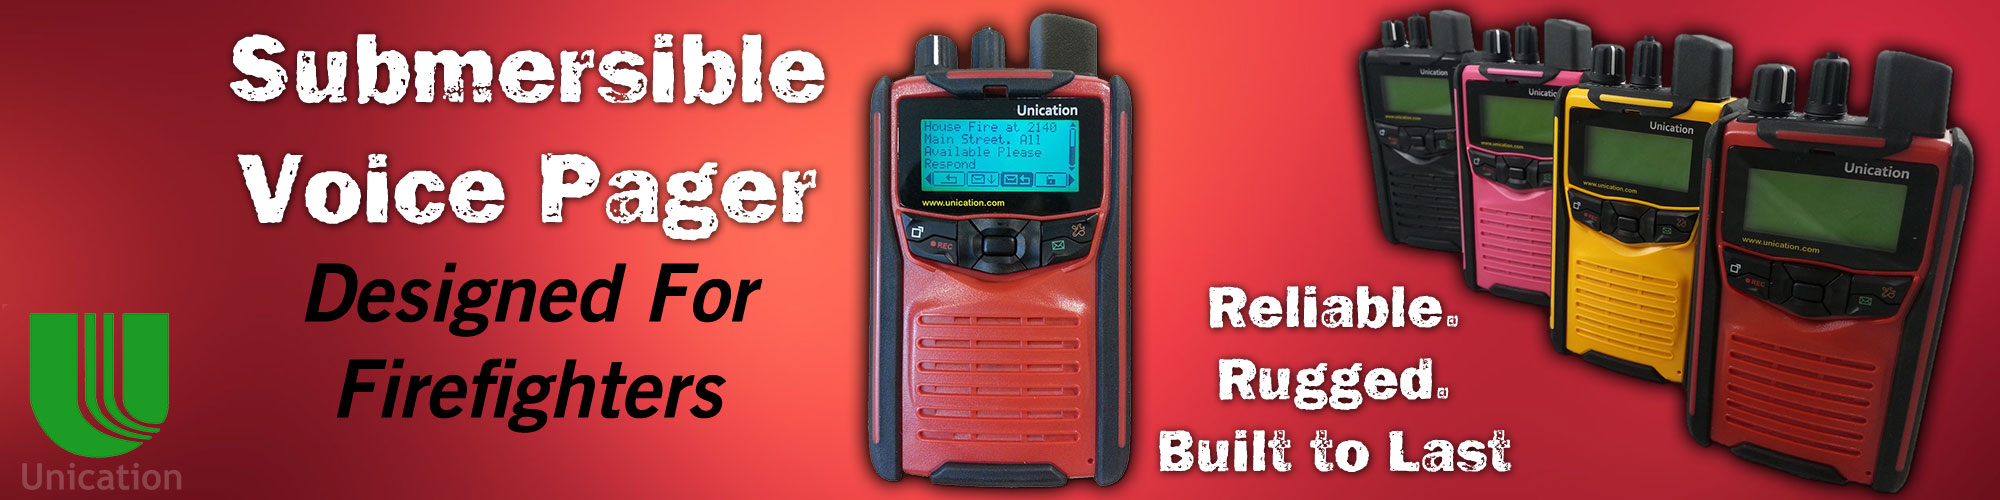 Submersible Voice Pager from Bay Electronics in Wisconsin